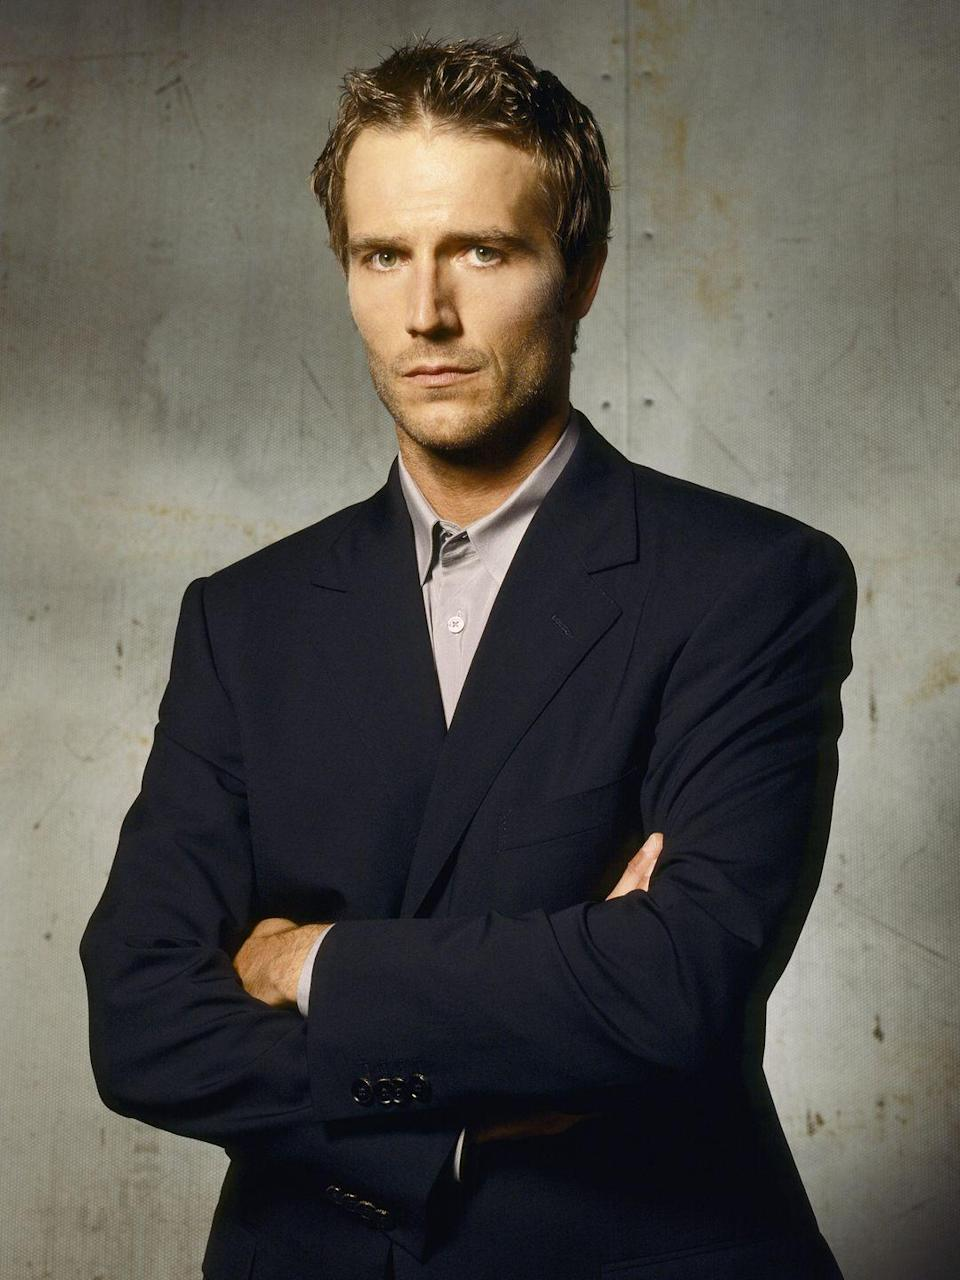 <p>So many of us fell for Michael Vartan when he played Drew Barrymore's hot teacher in the big-screen rom-com <em>Never Been Kissed</em>. The French-born star also cameo'd as Richard Burke's son on <em>Friends</em>, and starred alongside Robin Williams in the psychological thriller <em>One Hour Photo</em>. But Vartan is definitely best known for his role on this spy show as Michael Vaughn. Vaughn is Sydney's handler for the CIA, but he's also her love interest, and the sparks fly between the two in their clandestine romance. And every time he was presumed dead, it was a little bit heartbreaking. But the on-screen chemistry between Vartan and co-star Garner was off the charts, and the two dated in real life for a while. </p>